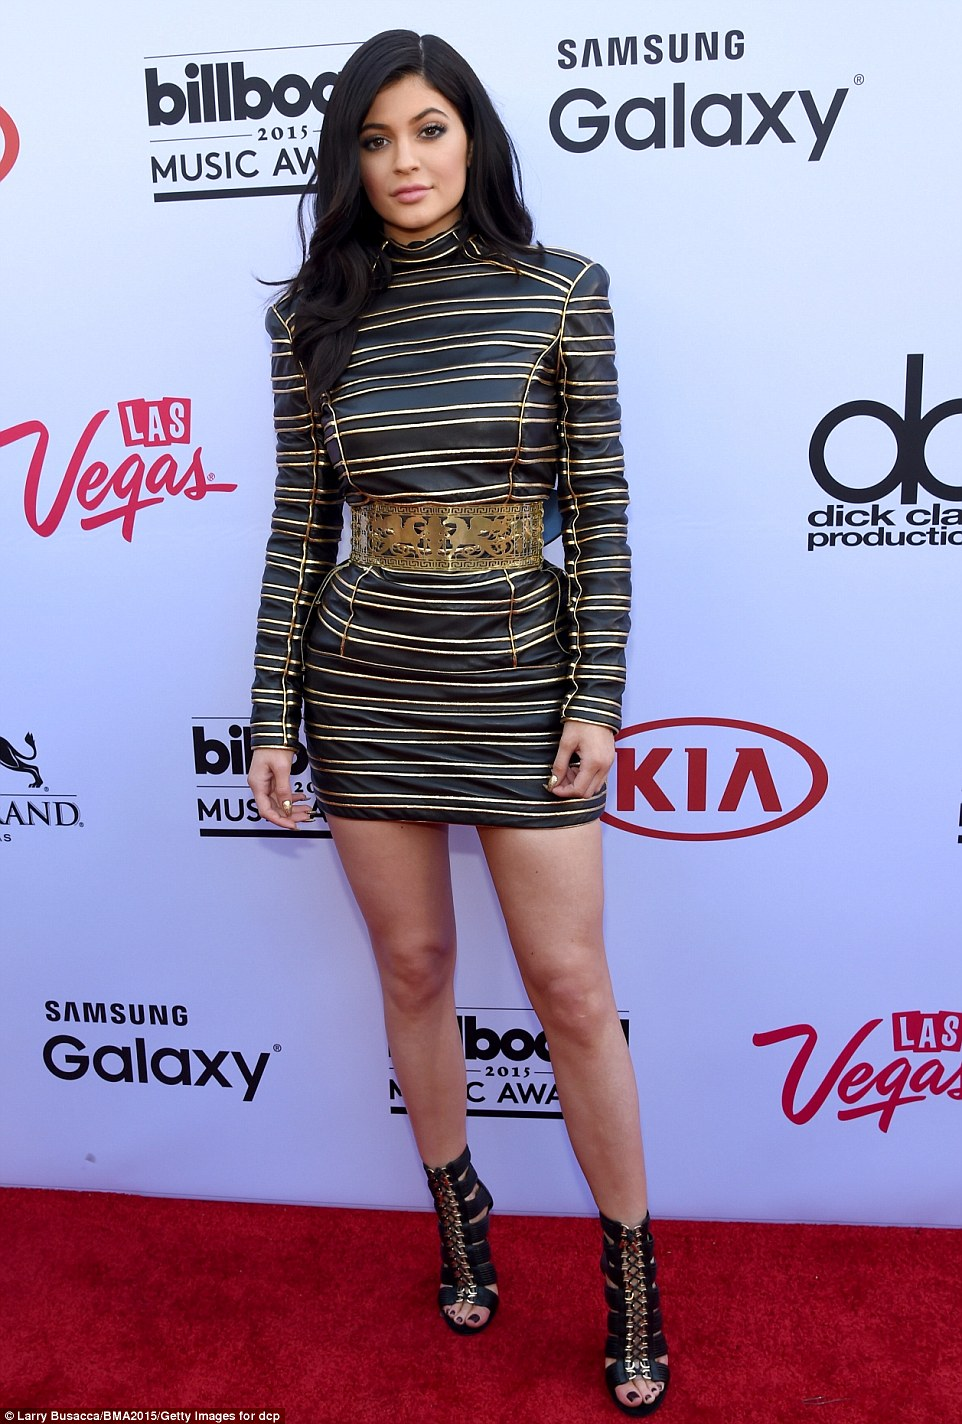 The lips look smaller! 17-year-old Kylie cinched her tiny waist with a gold belt, and rocked a leggy striped mini-dress with gladiator heels